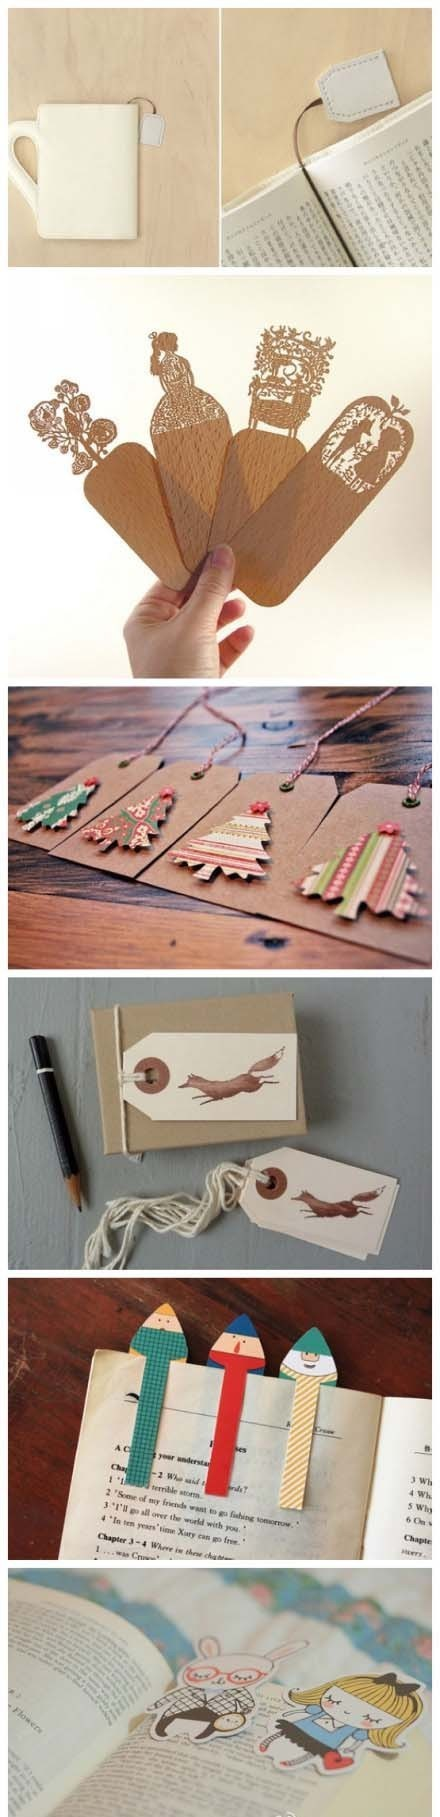 DIY Bookmarks - HA! these are SO not DIY, but they are fantastic